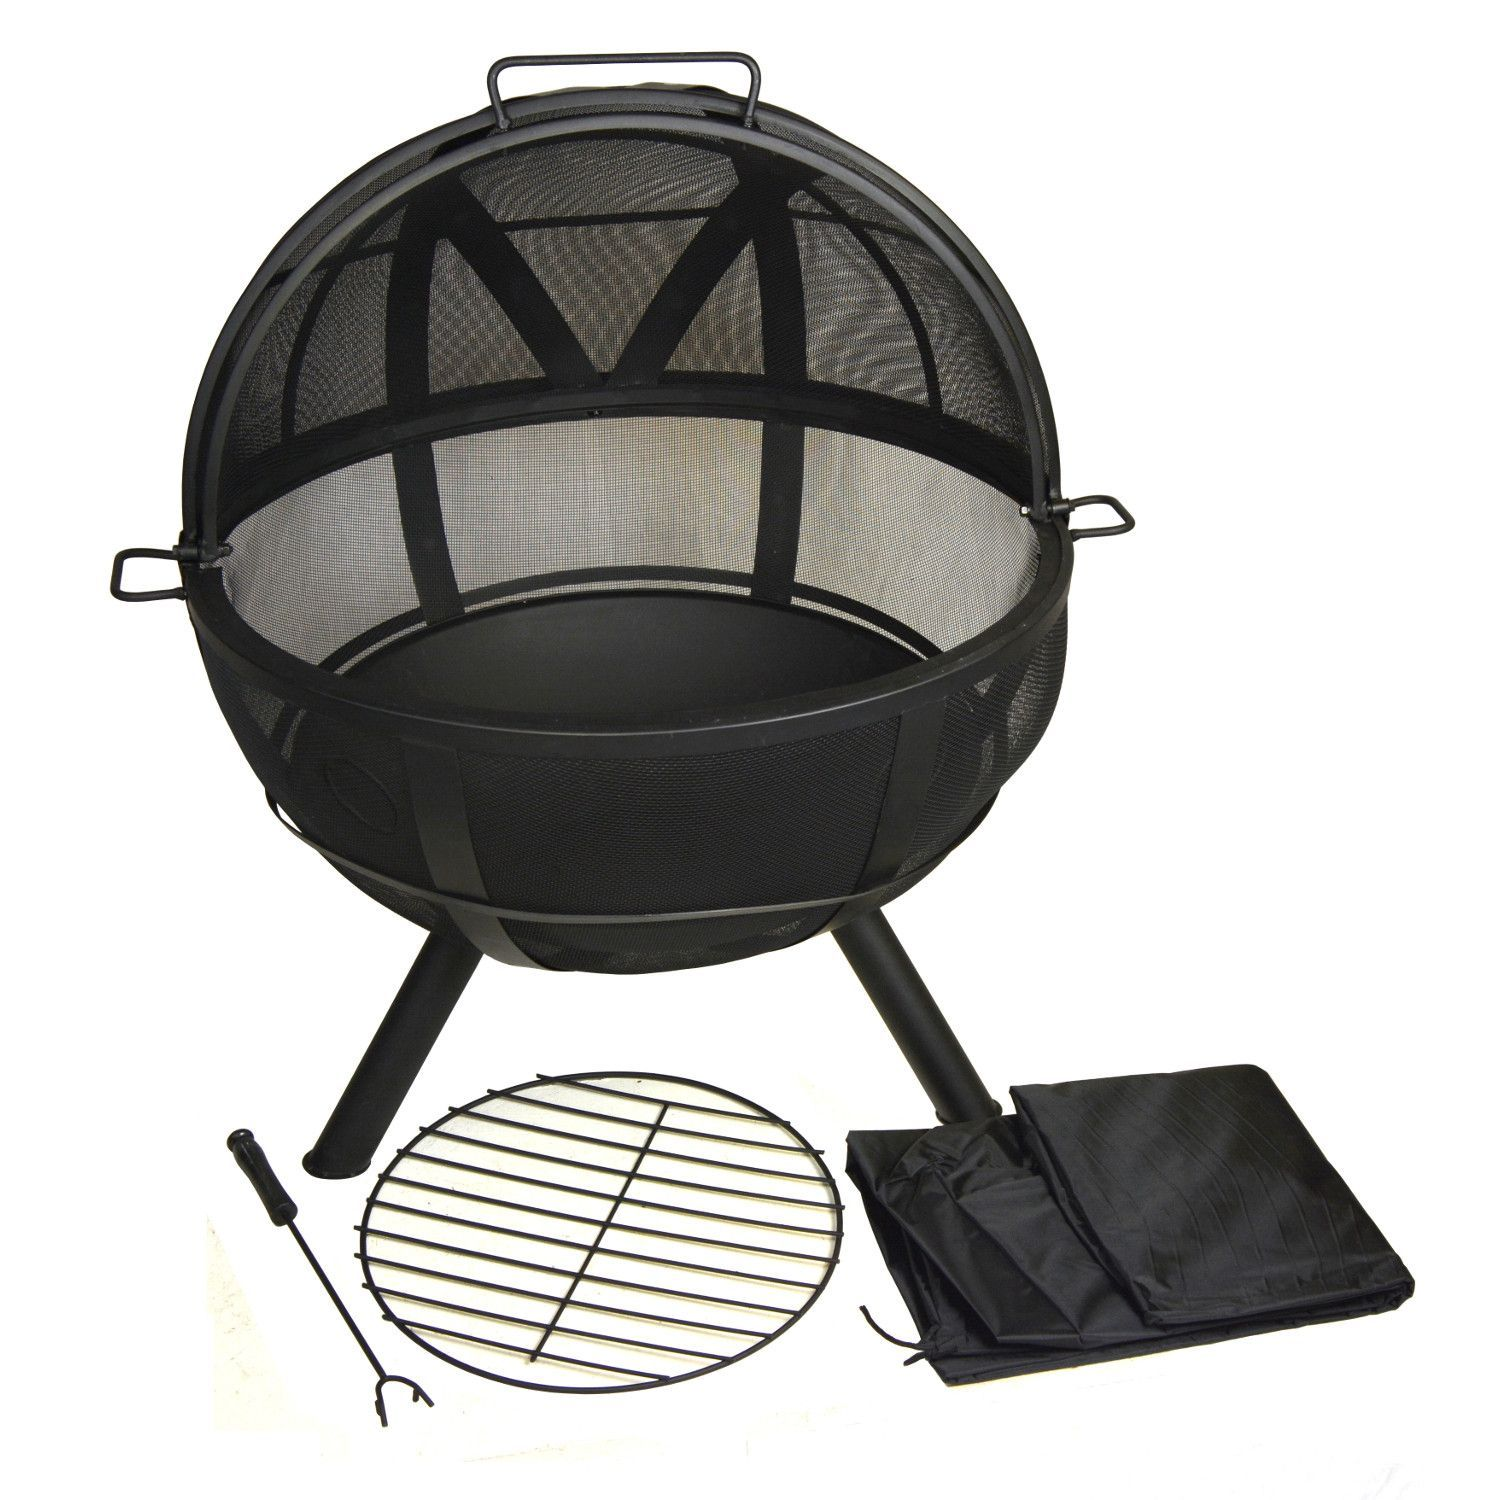 Glow Master Portable Fire Pit Sphere 30 Inch Diameter With Spark Protection Screen Fire Pit Sphere Fire Pit Portable Fire Pits